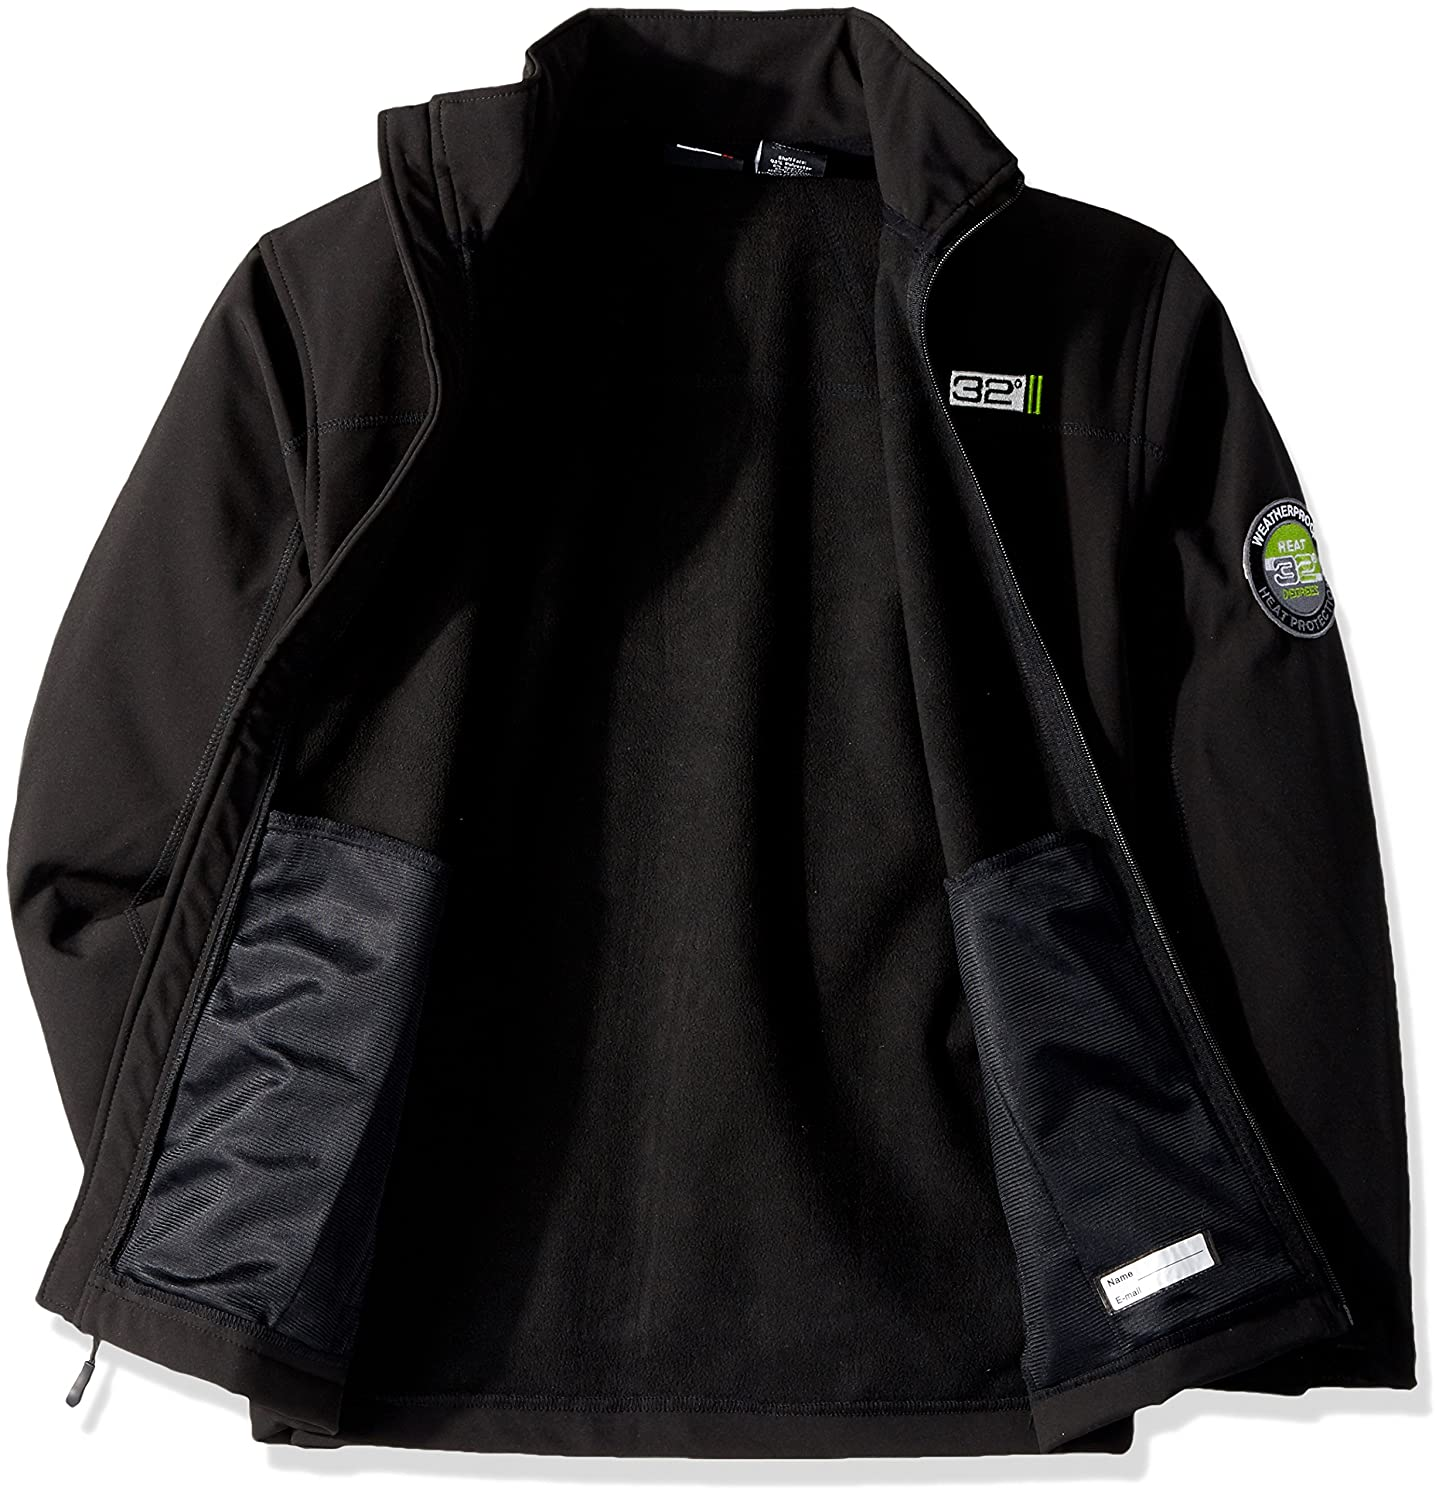 32 DEGREES Boys Outerwear Jacket Softshell-WF74-Black 14//16 Weatherproof 32 Degrees OBWF74H More Style Available